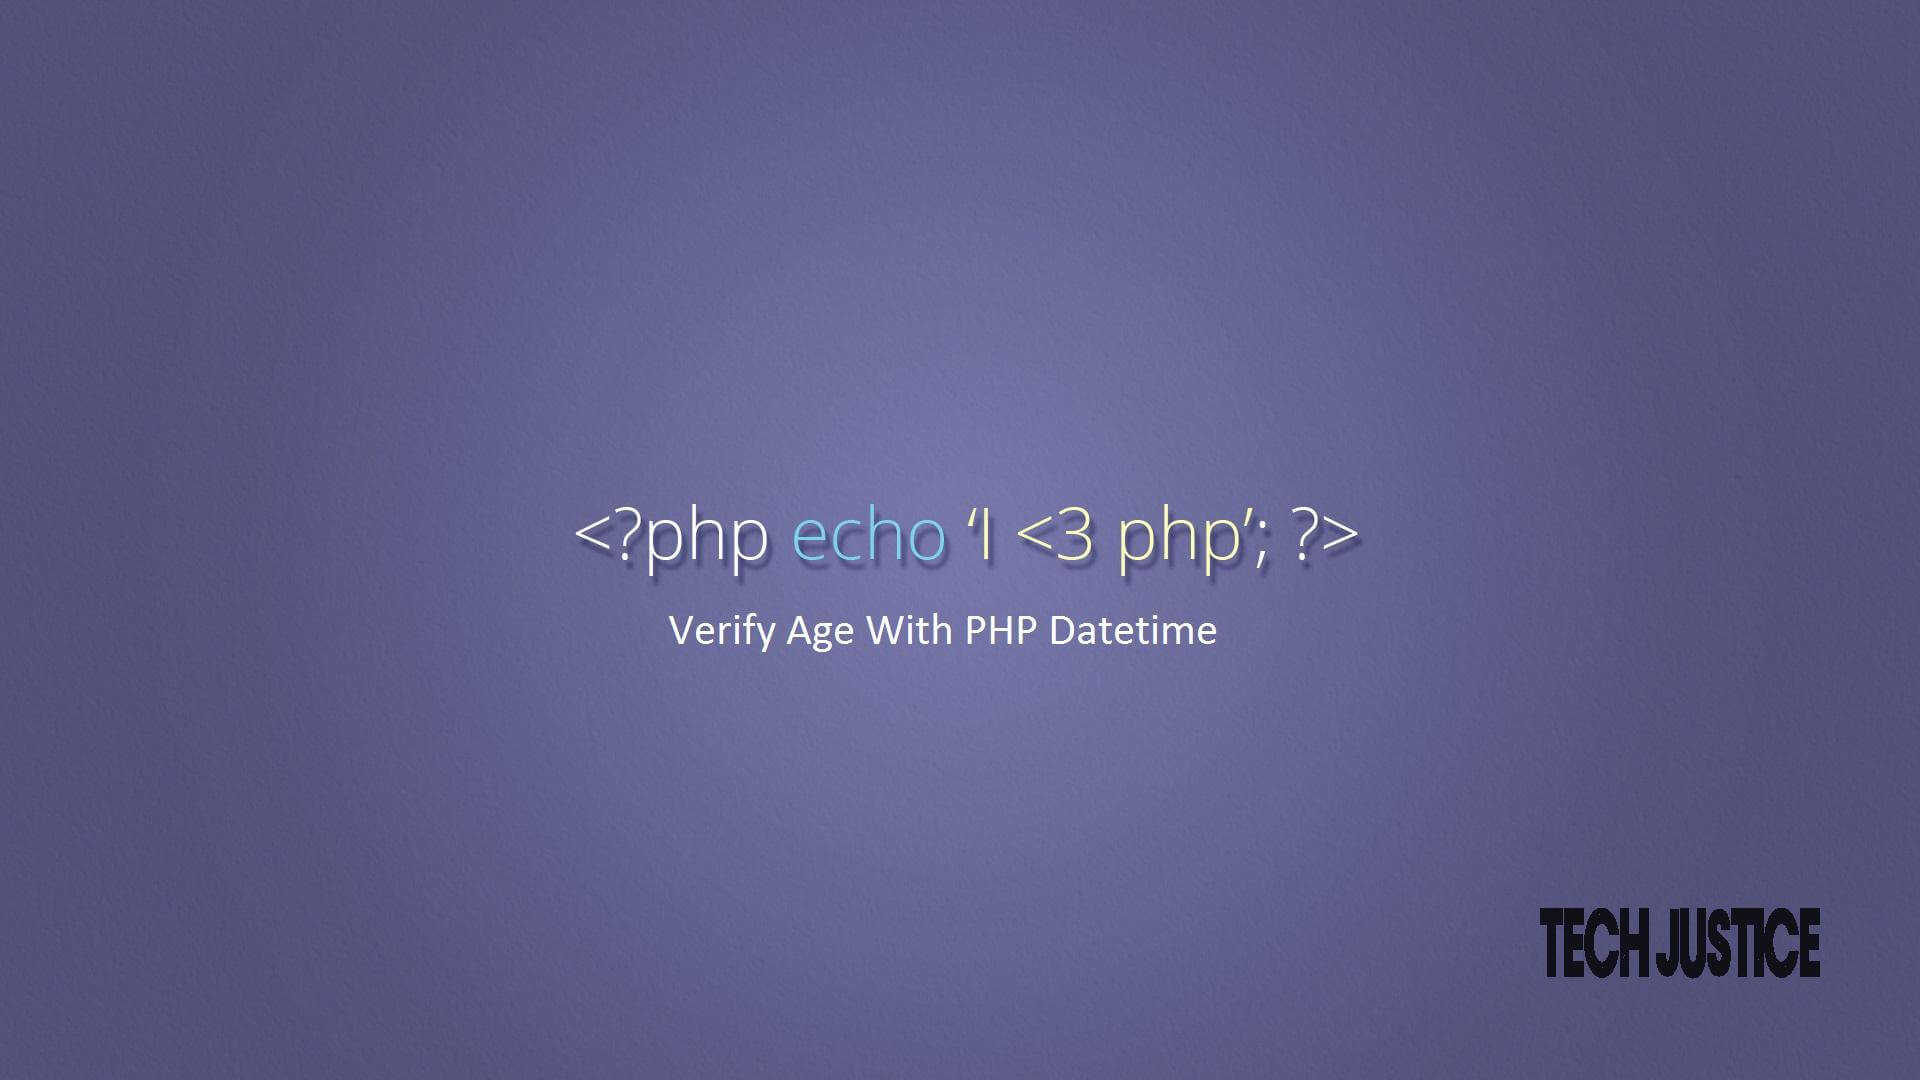 Verify Age With PHP Datetime